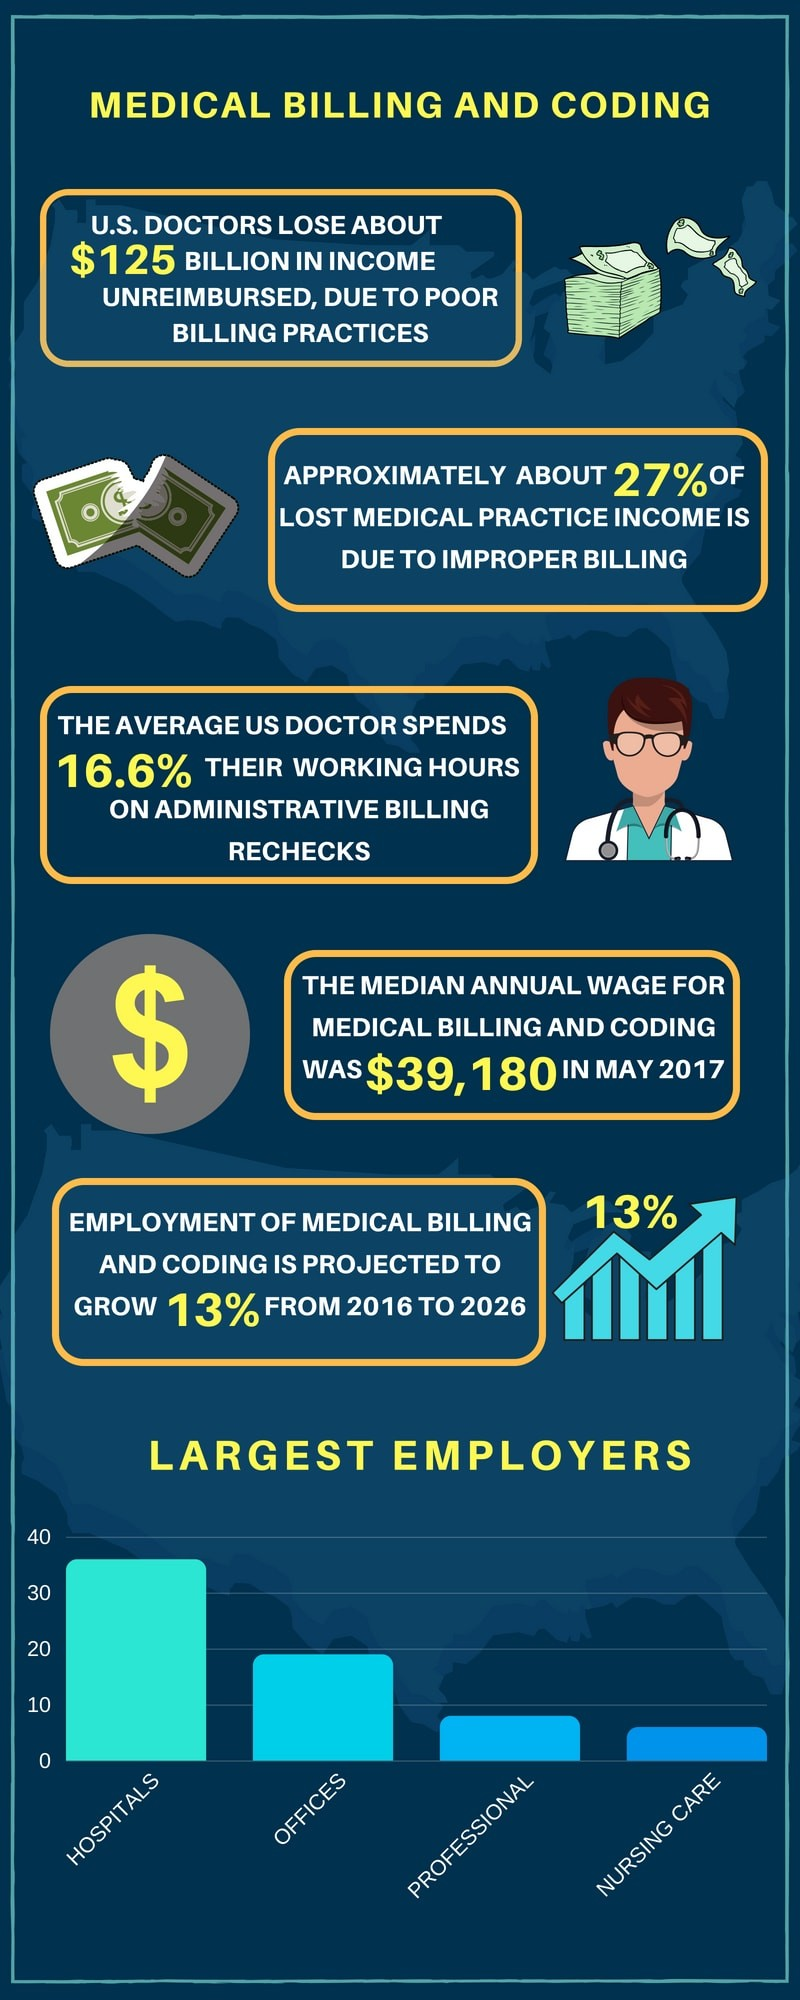 Medical Billing And Coding Salary >> Medical Billing And Coding Degree Requirements Tuition